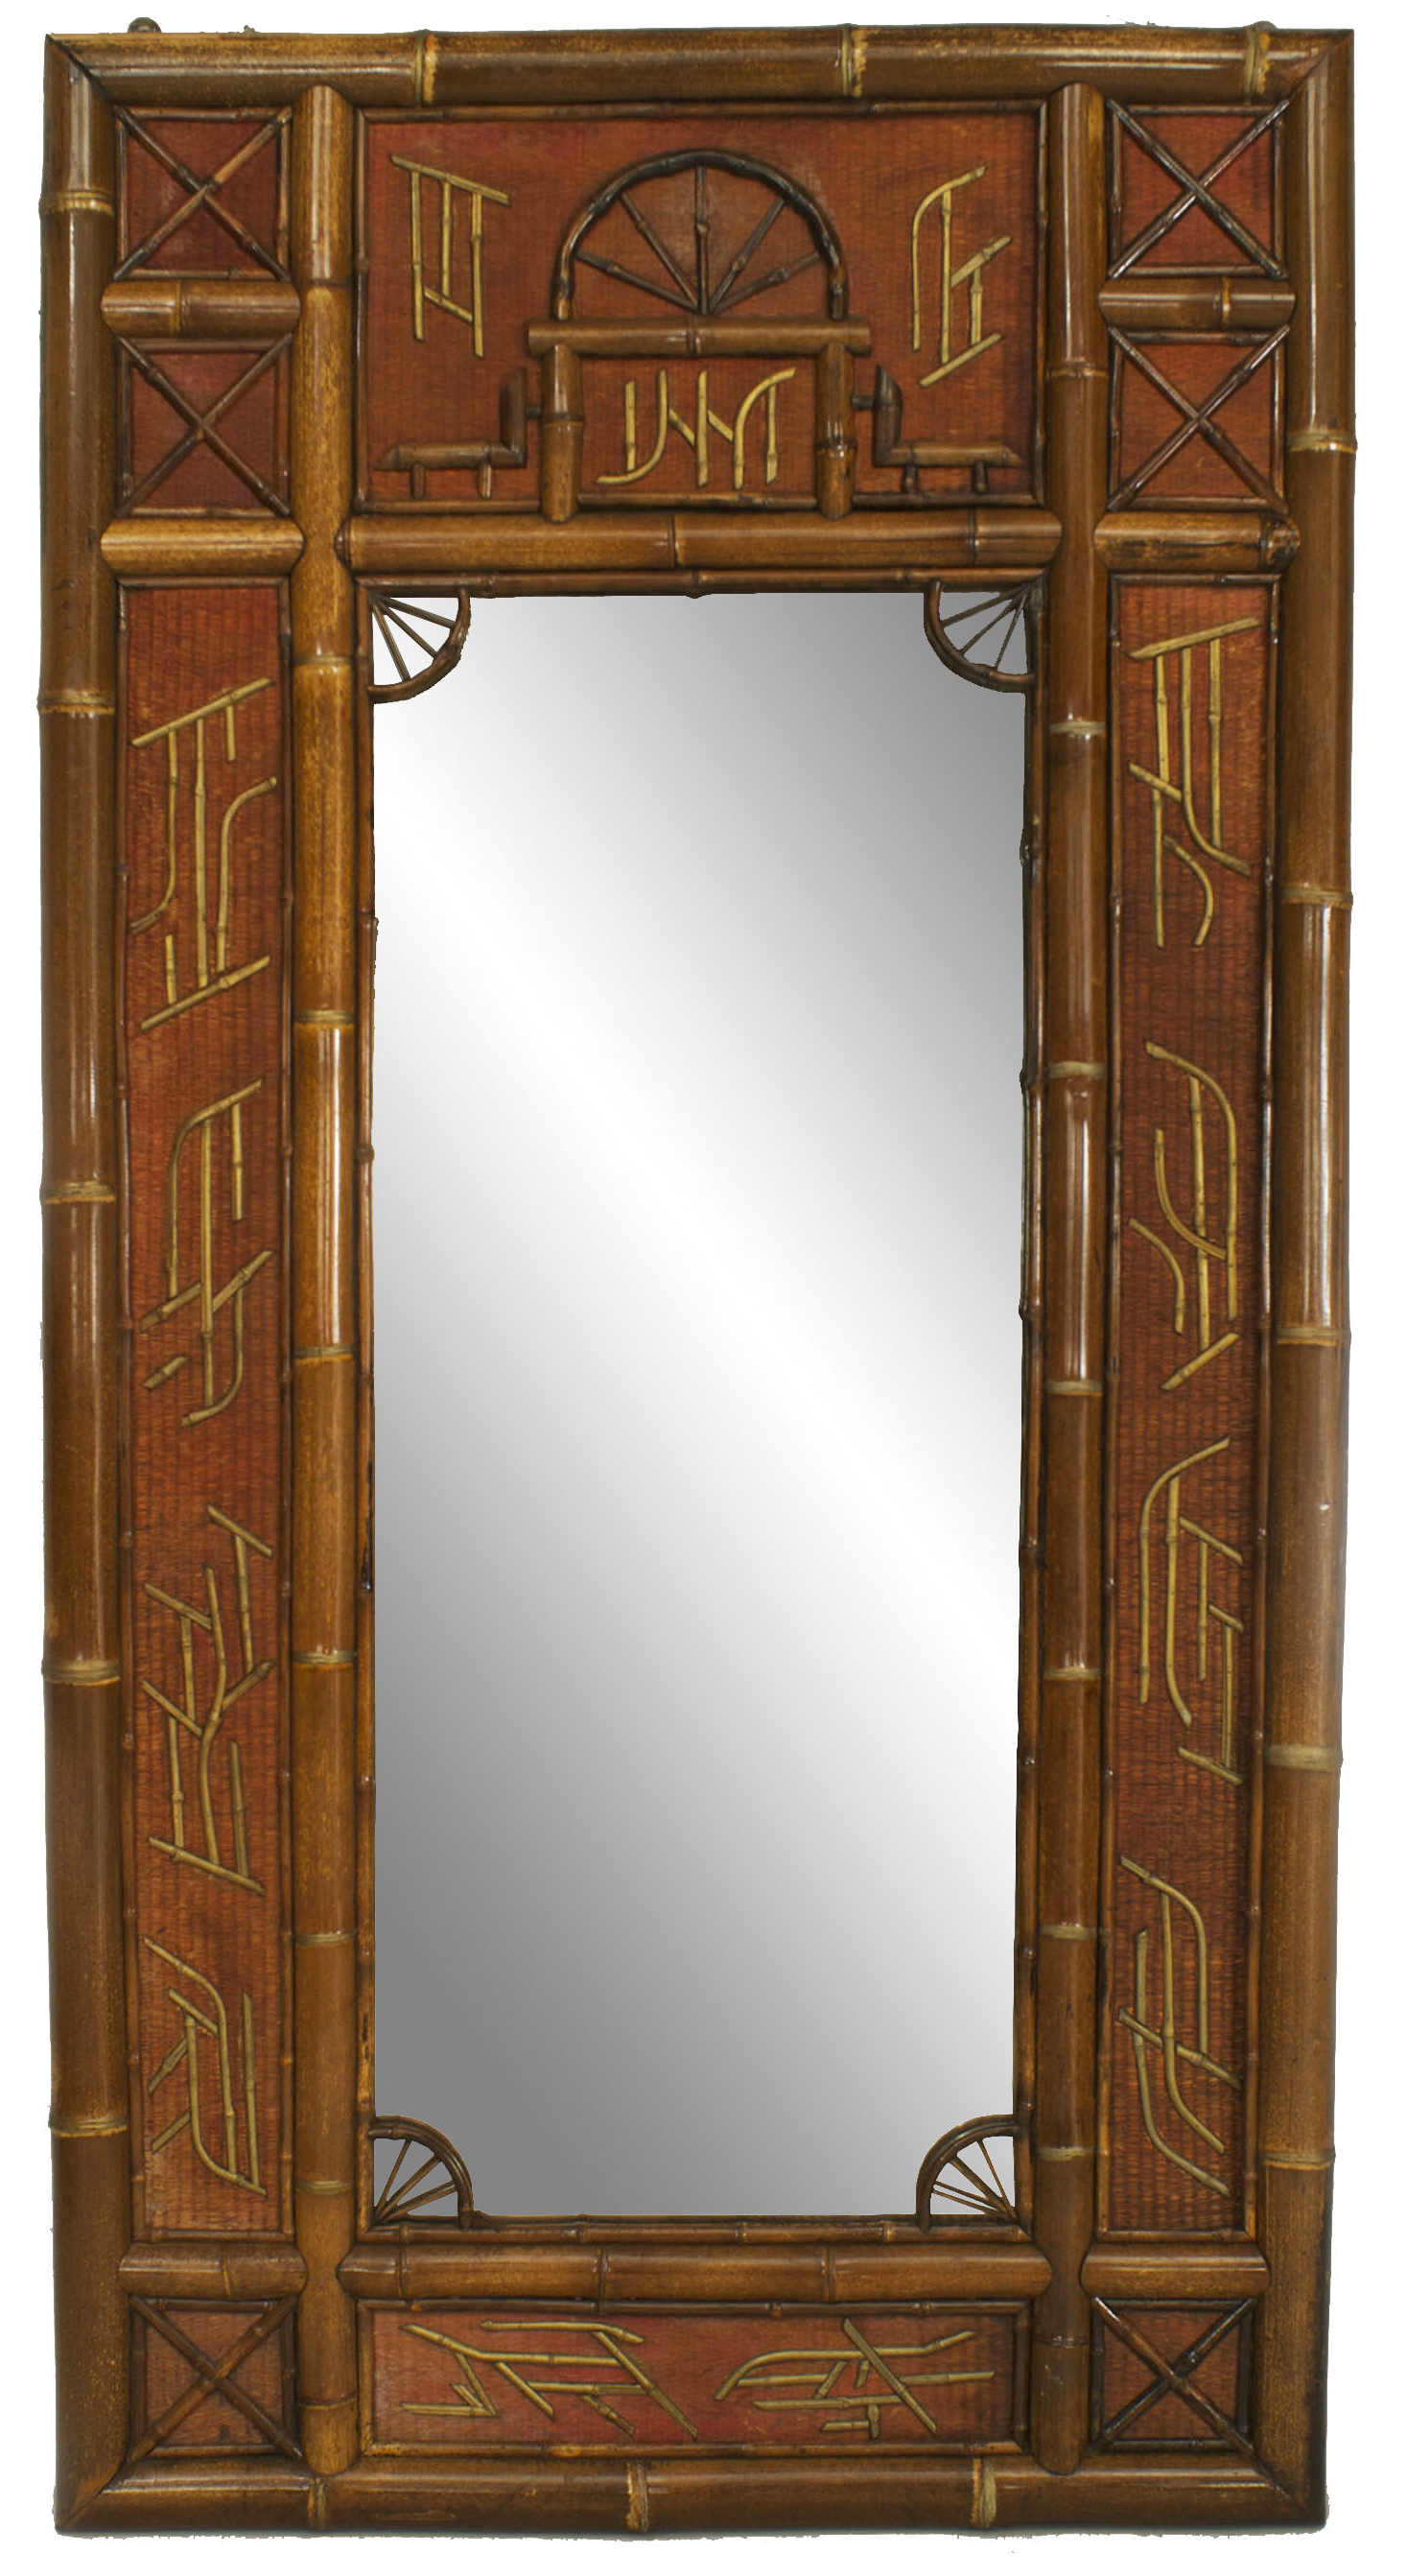 Large Red Wall Mirrors Inside 2020 English Victorian Bamboo And Rush Wall Mirror (View 18 of 20)